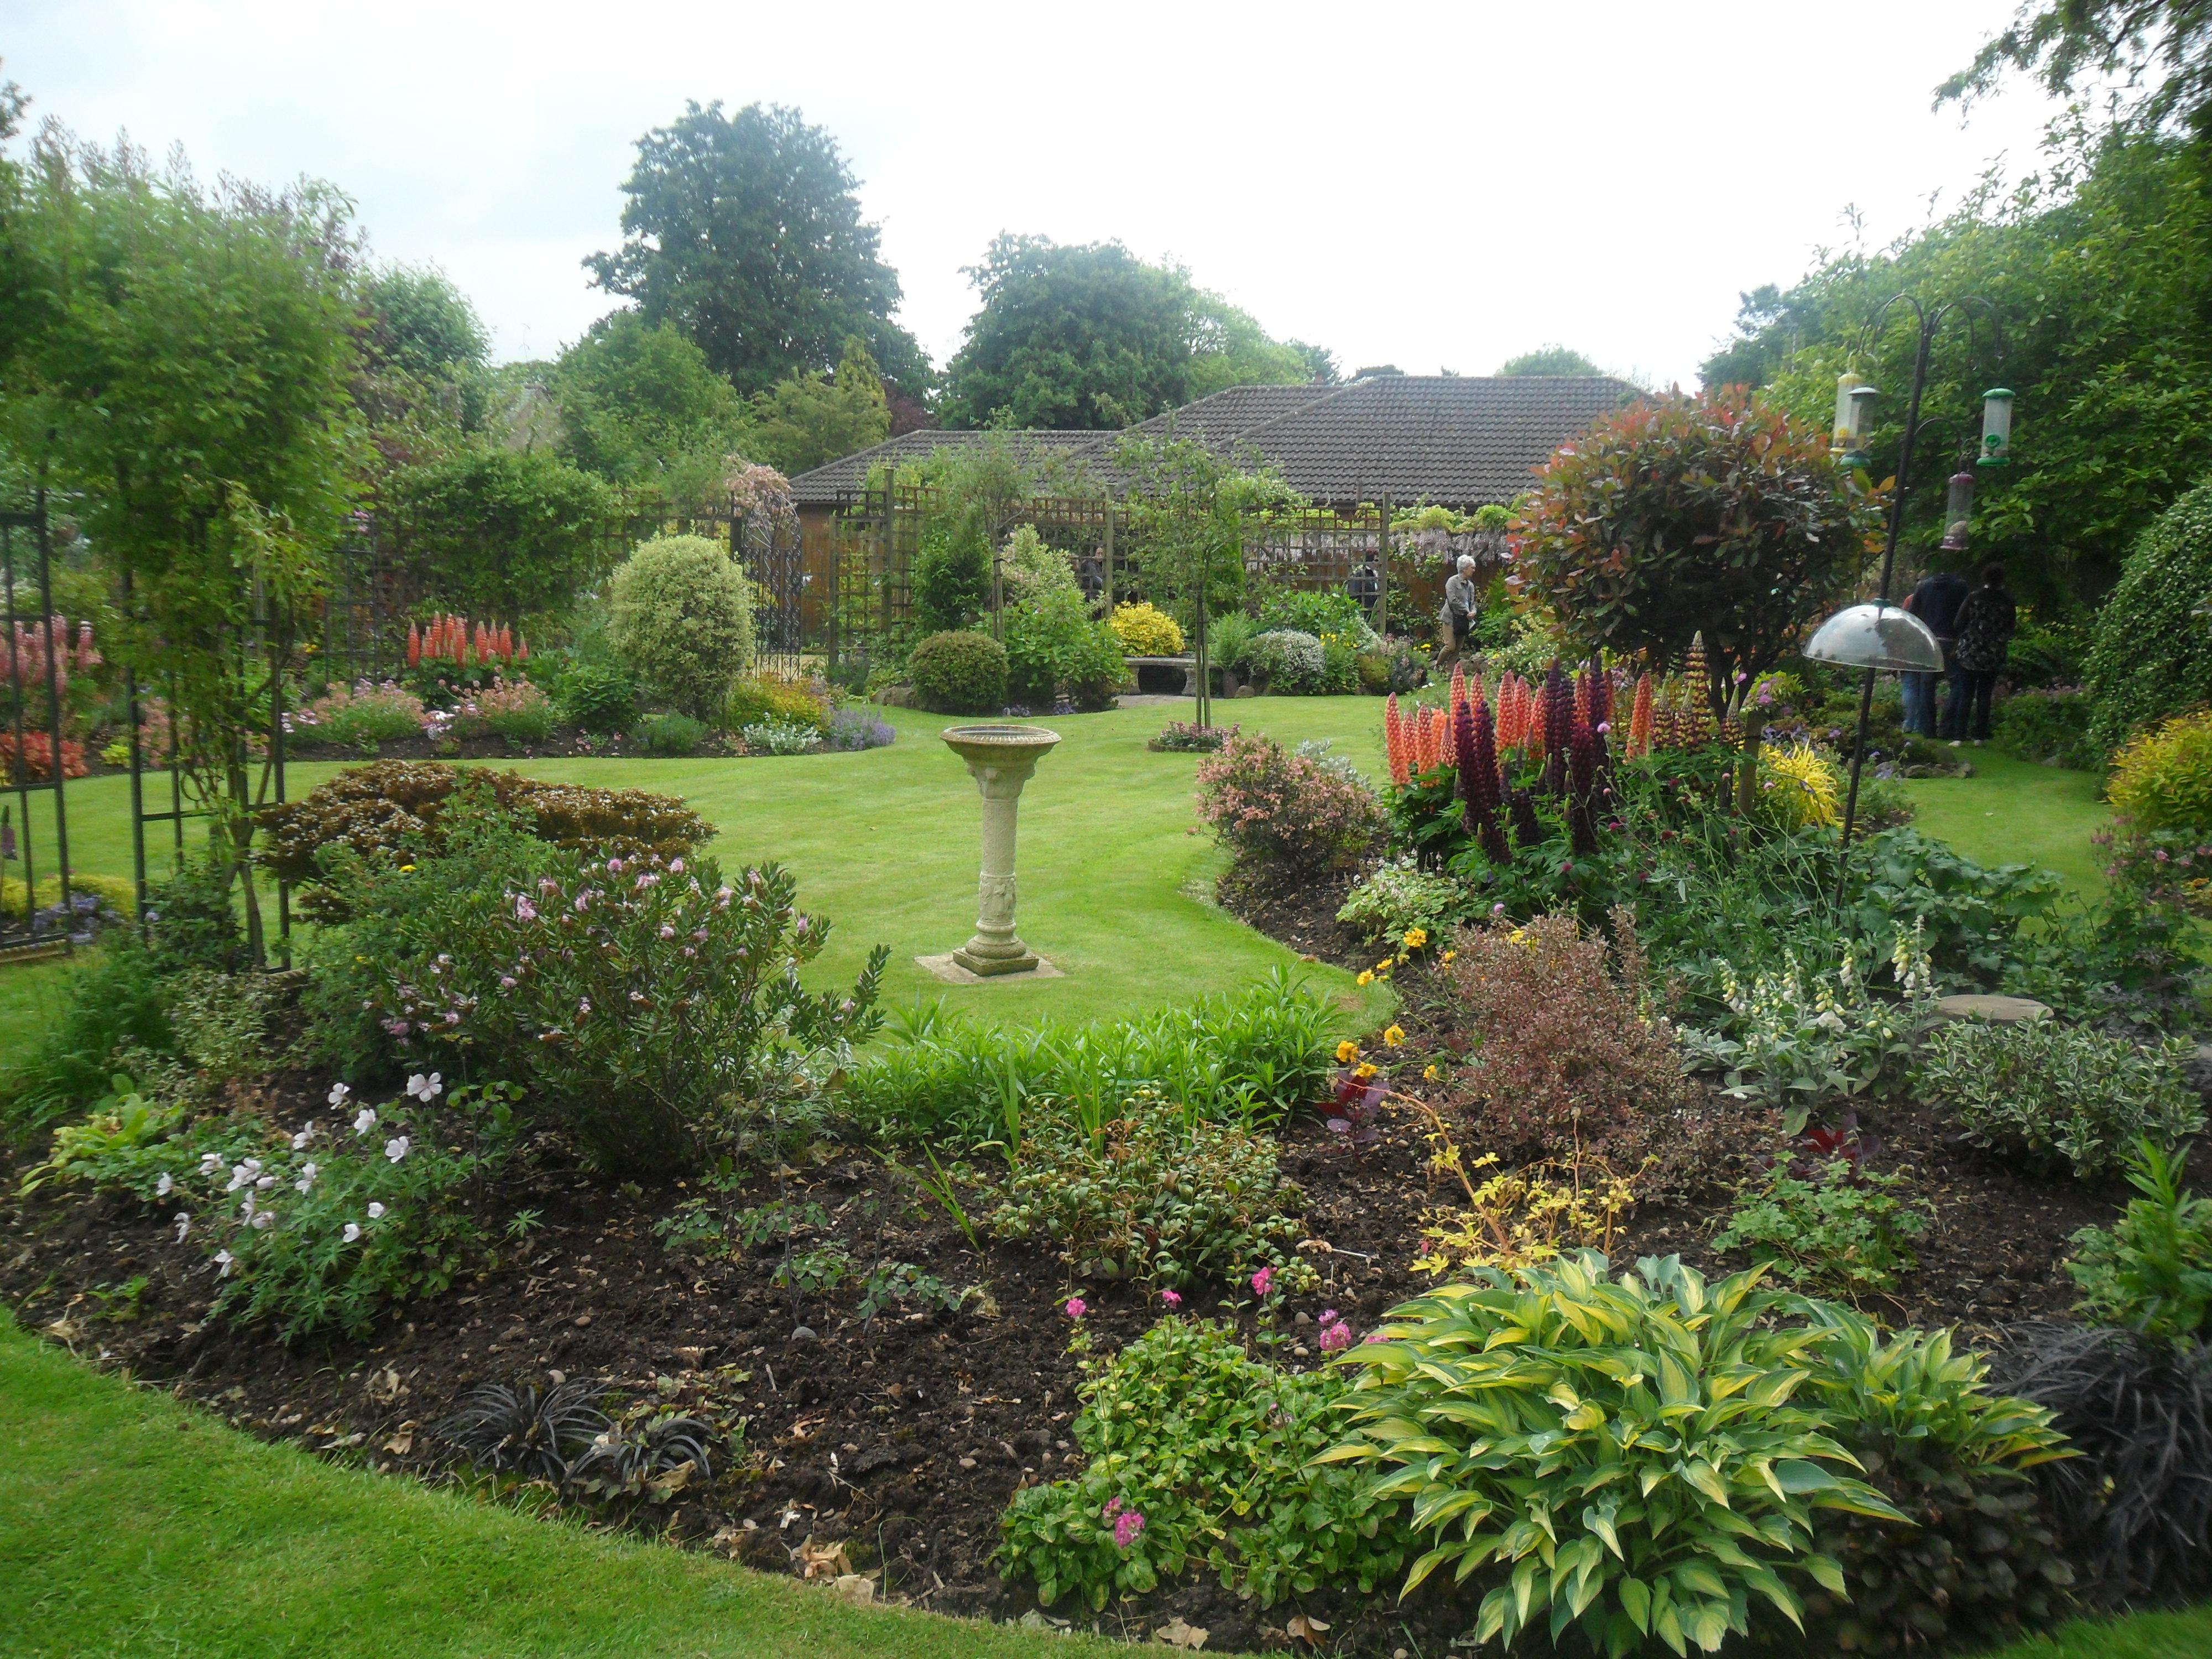 But one back garden showed how you can make a small garden beautiful: